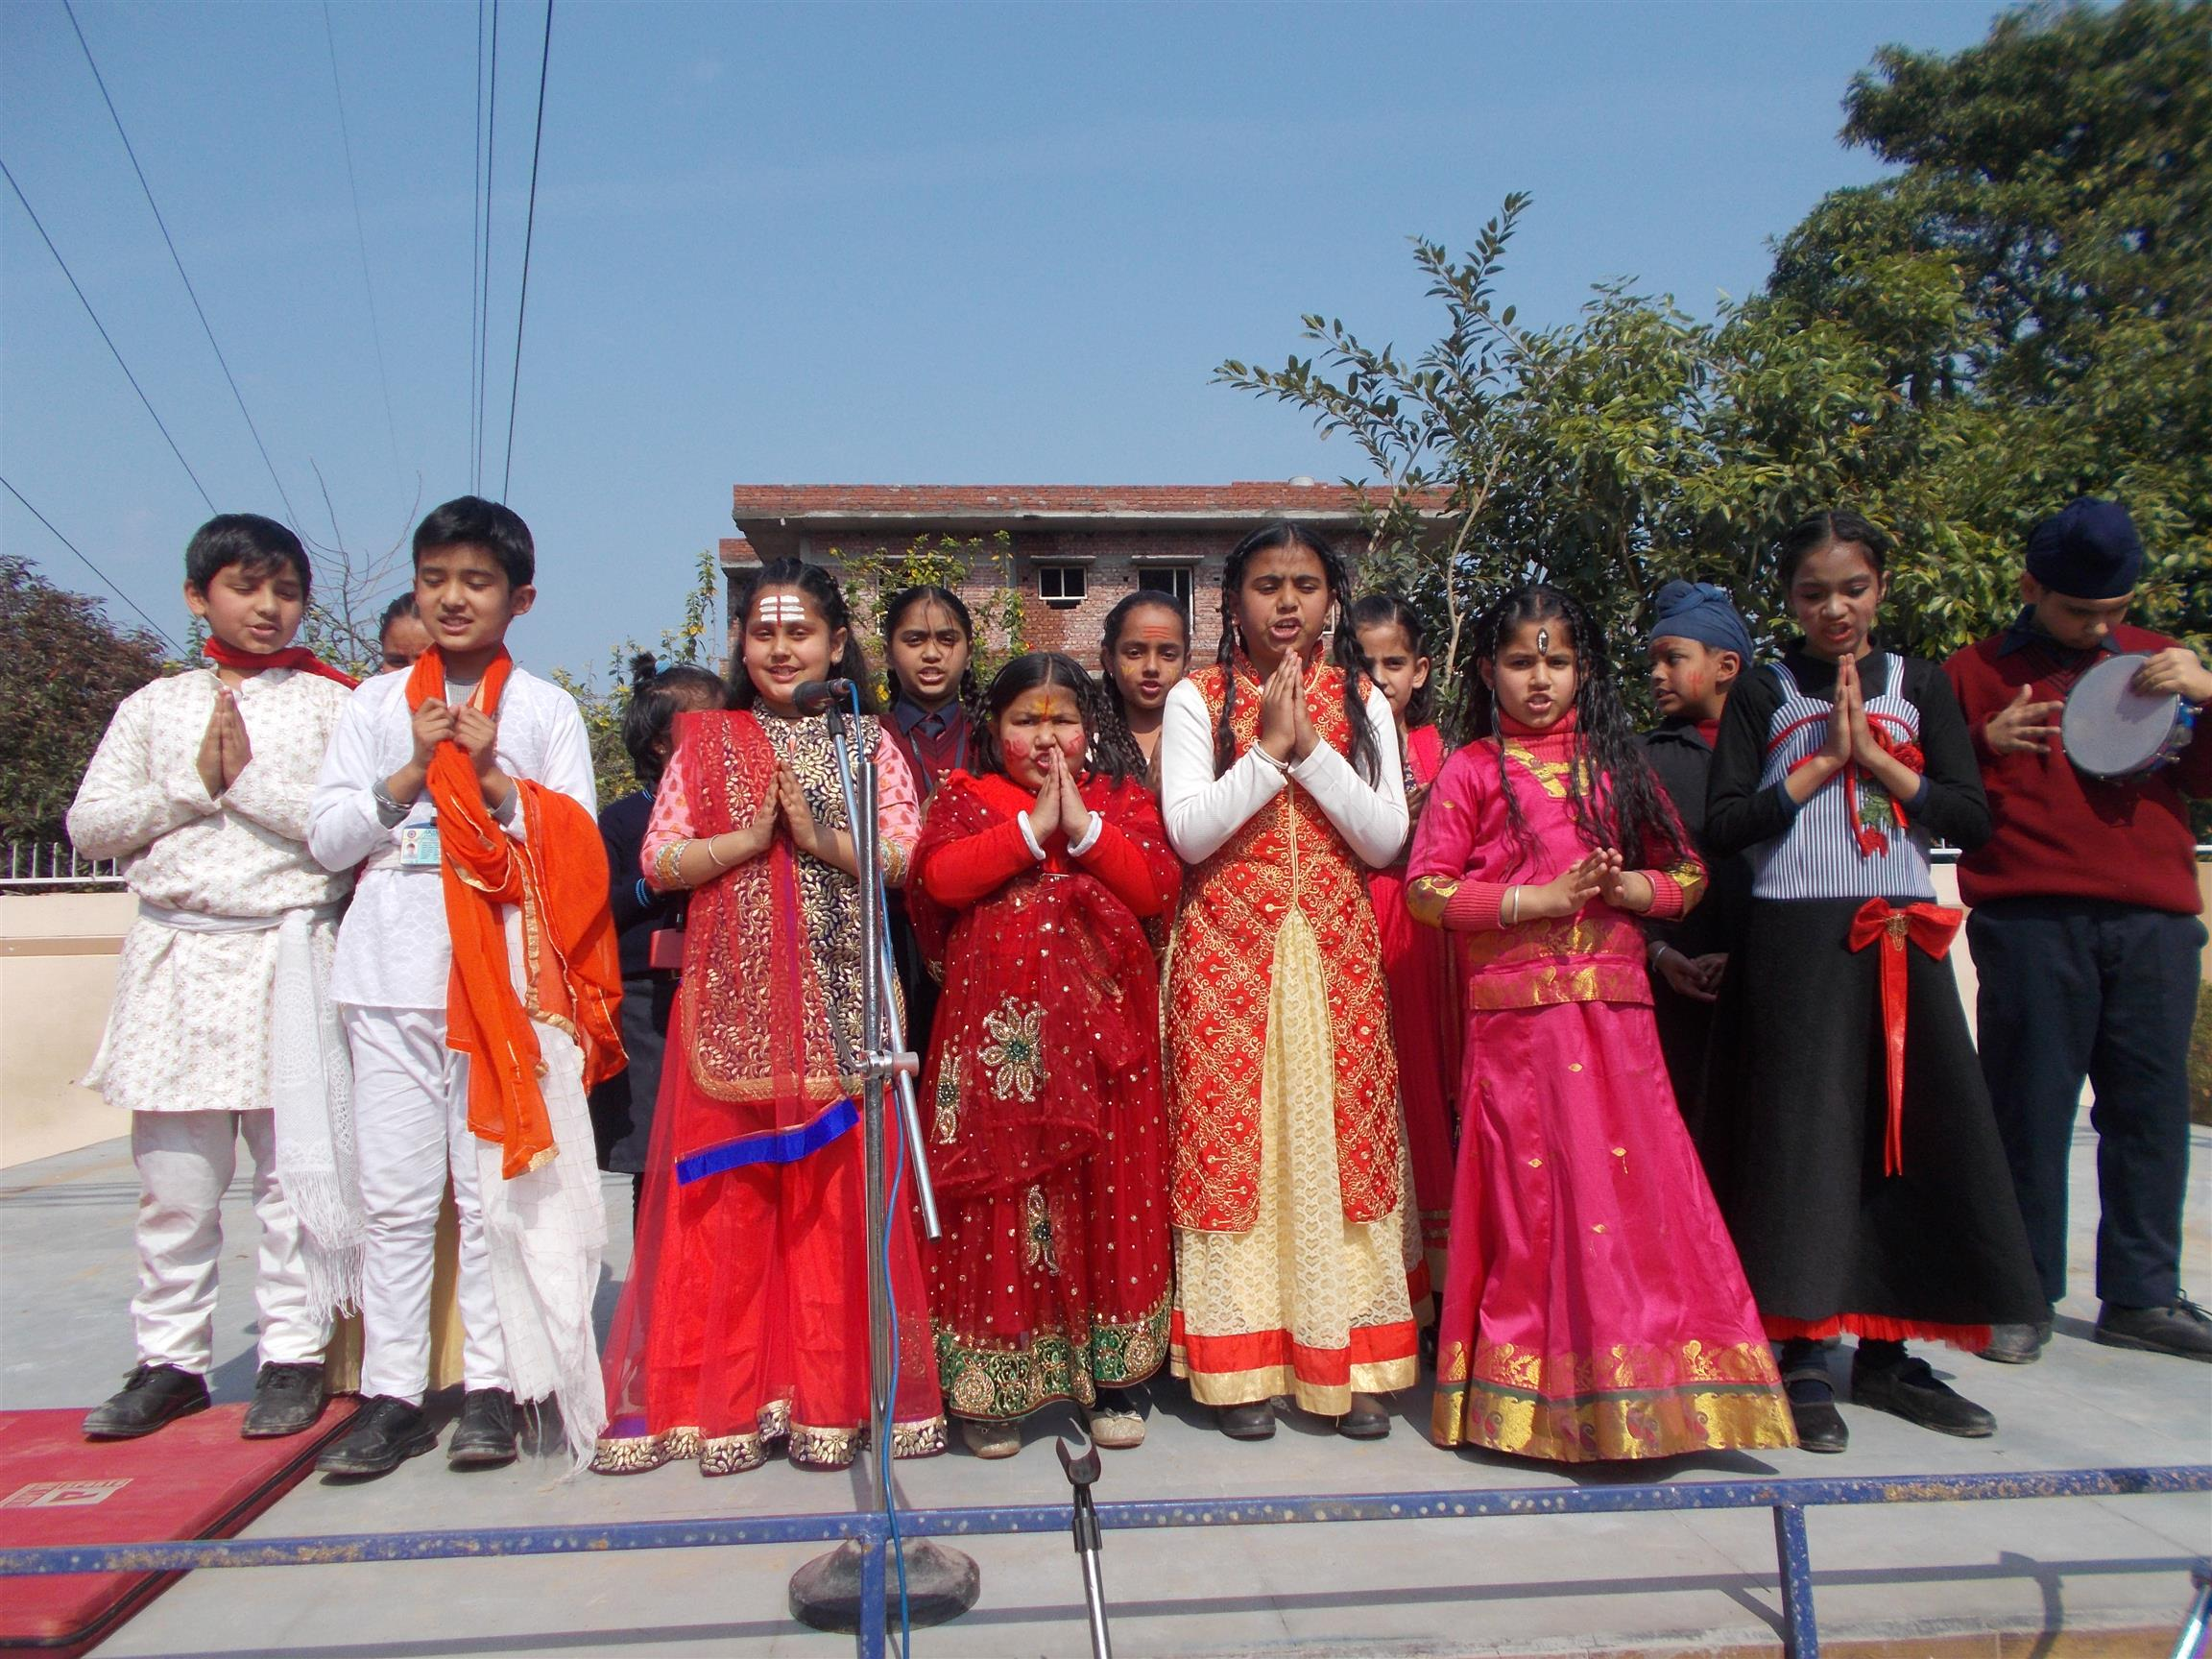 Shivratri celebrations | AKSIPS 125 Chandigarh